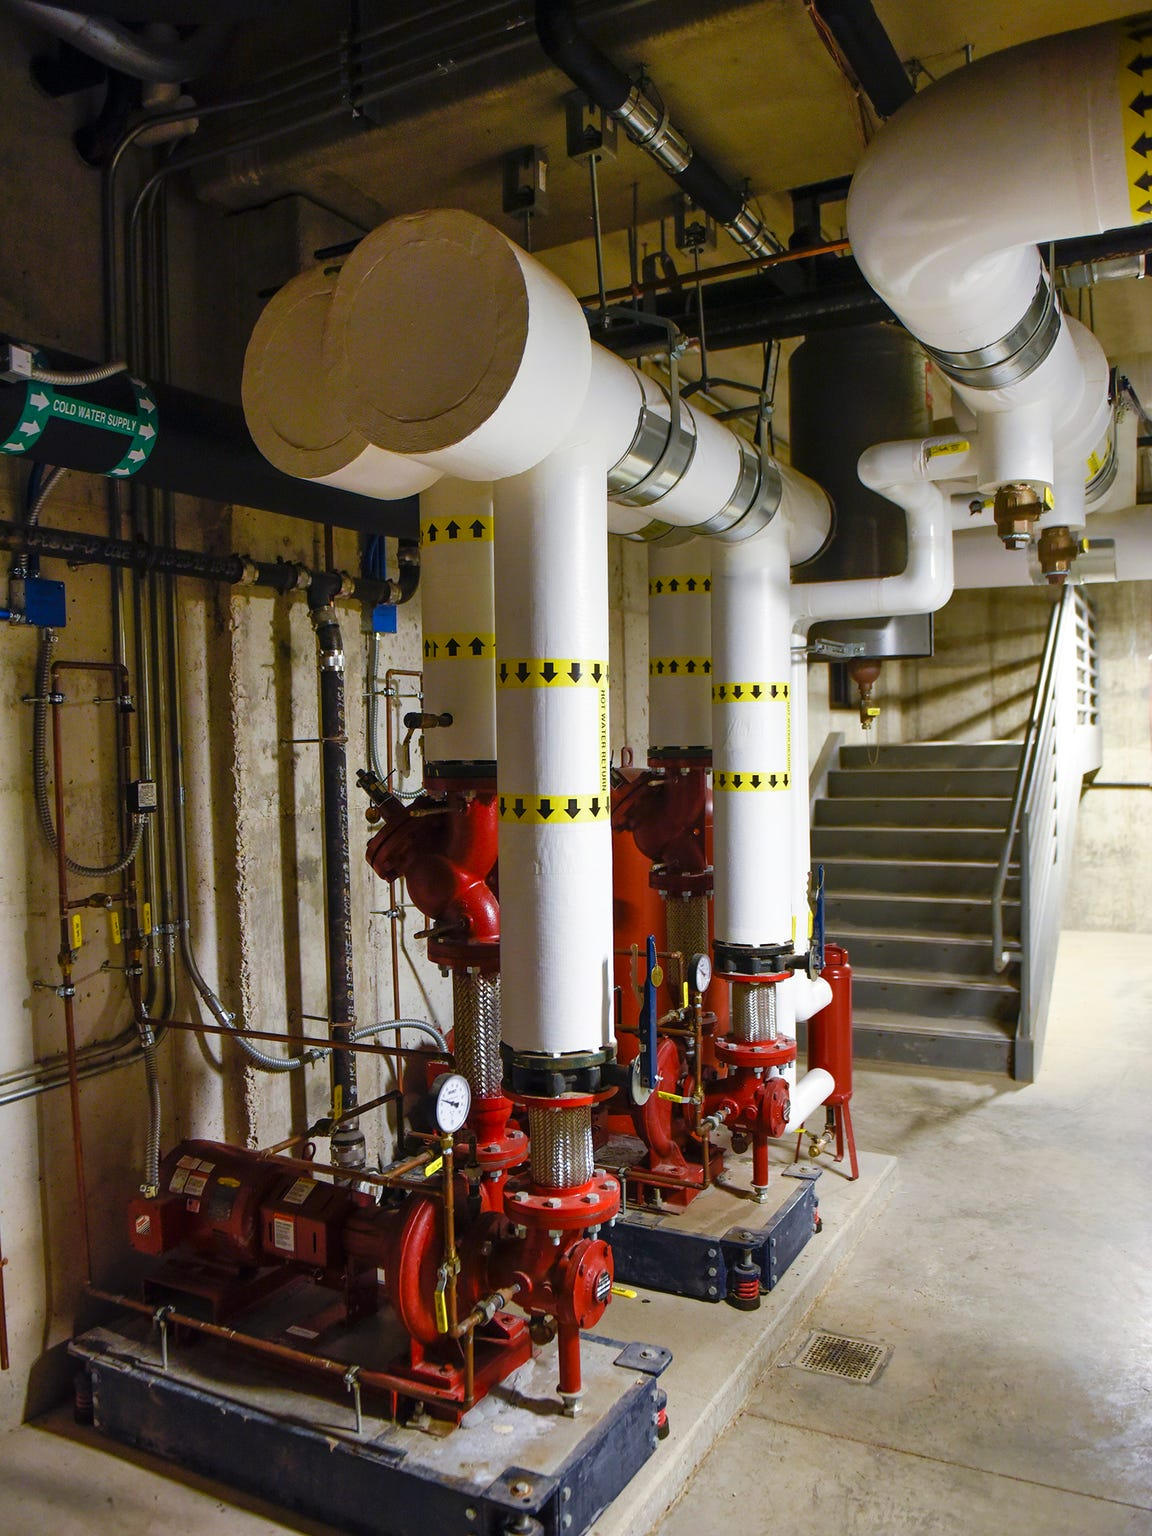 Large pumps move water in the geothermal system that